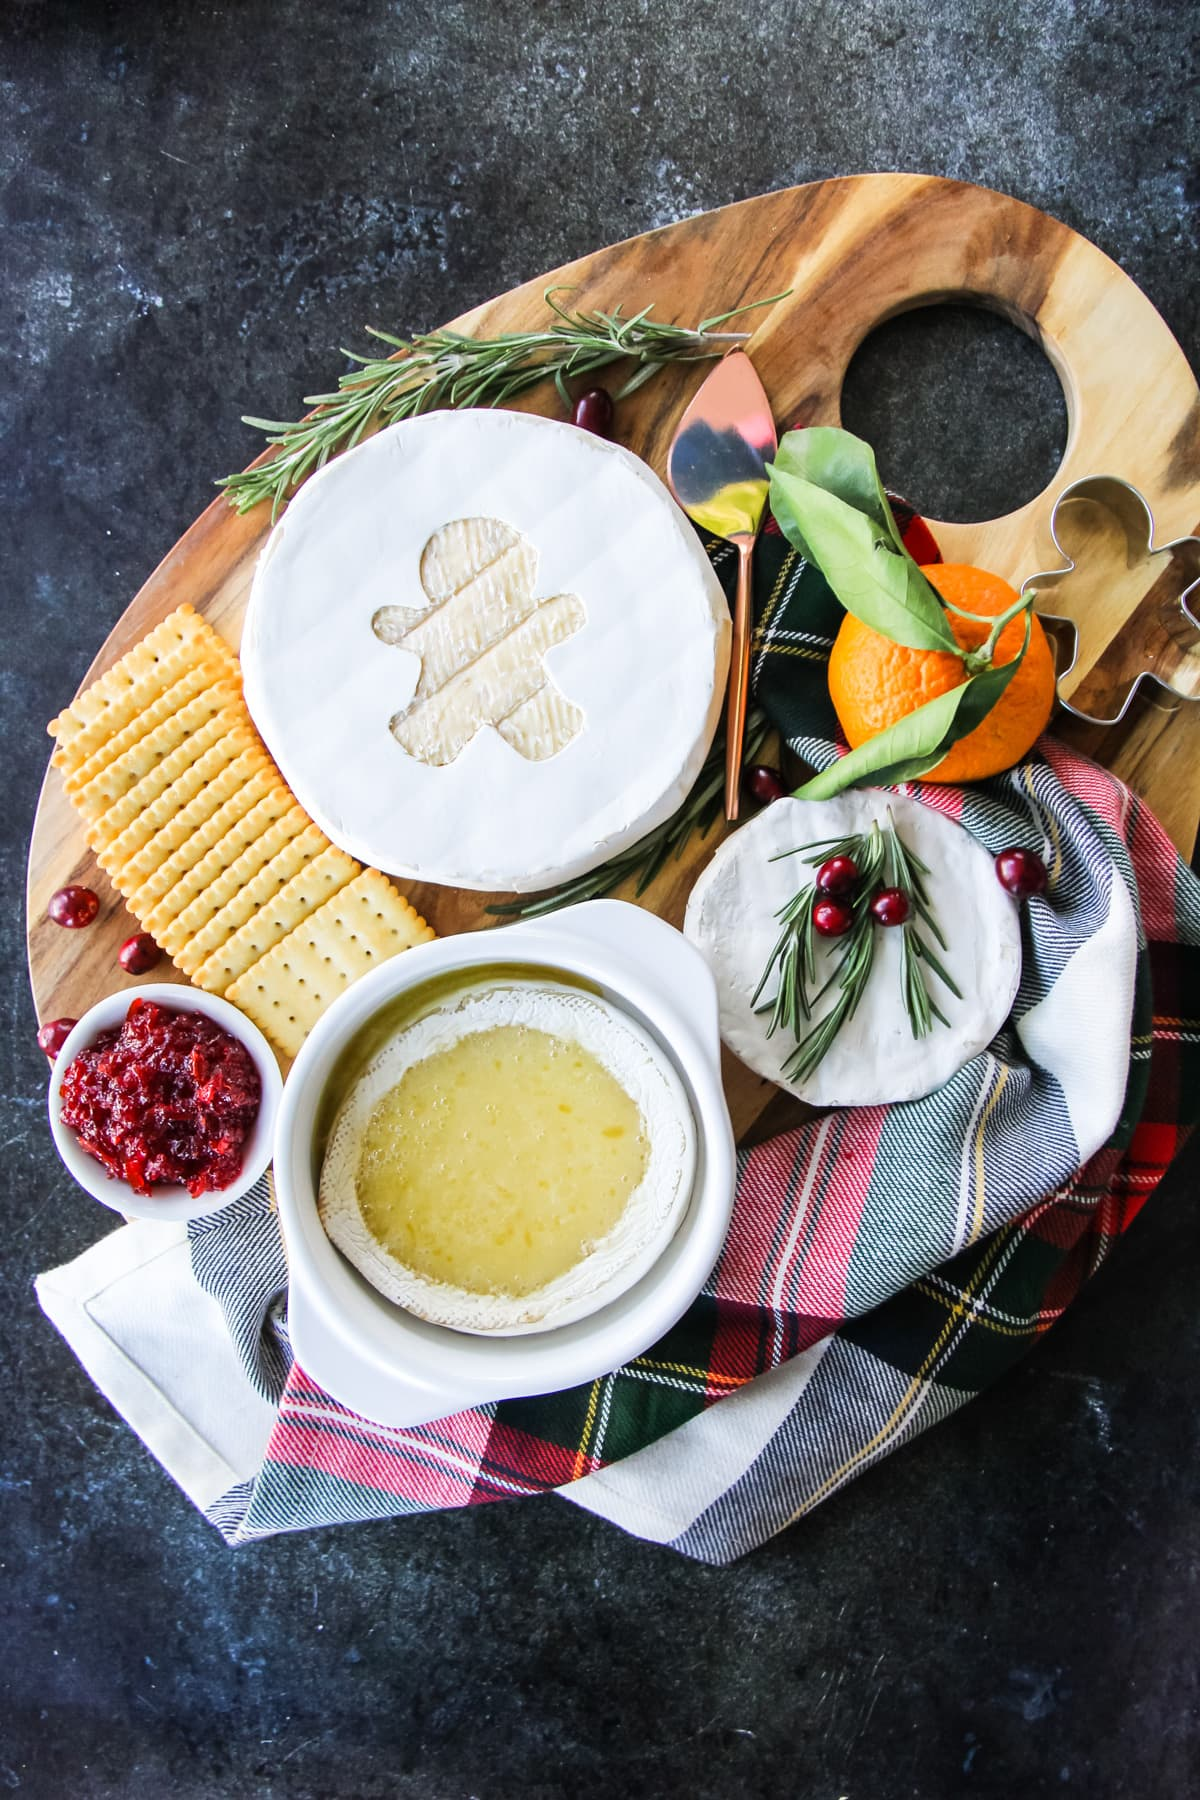 A cheese board with a baked Brie fondue, a wheel of Brie cheese with a gingerbread cut out and a small Brie topped with fresh rosemary and cranberries